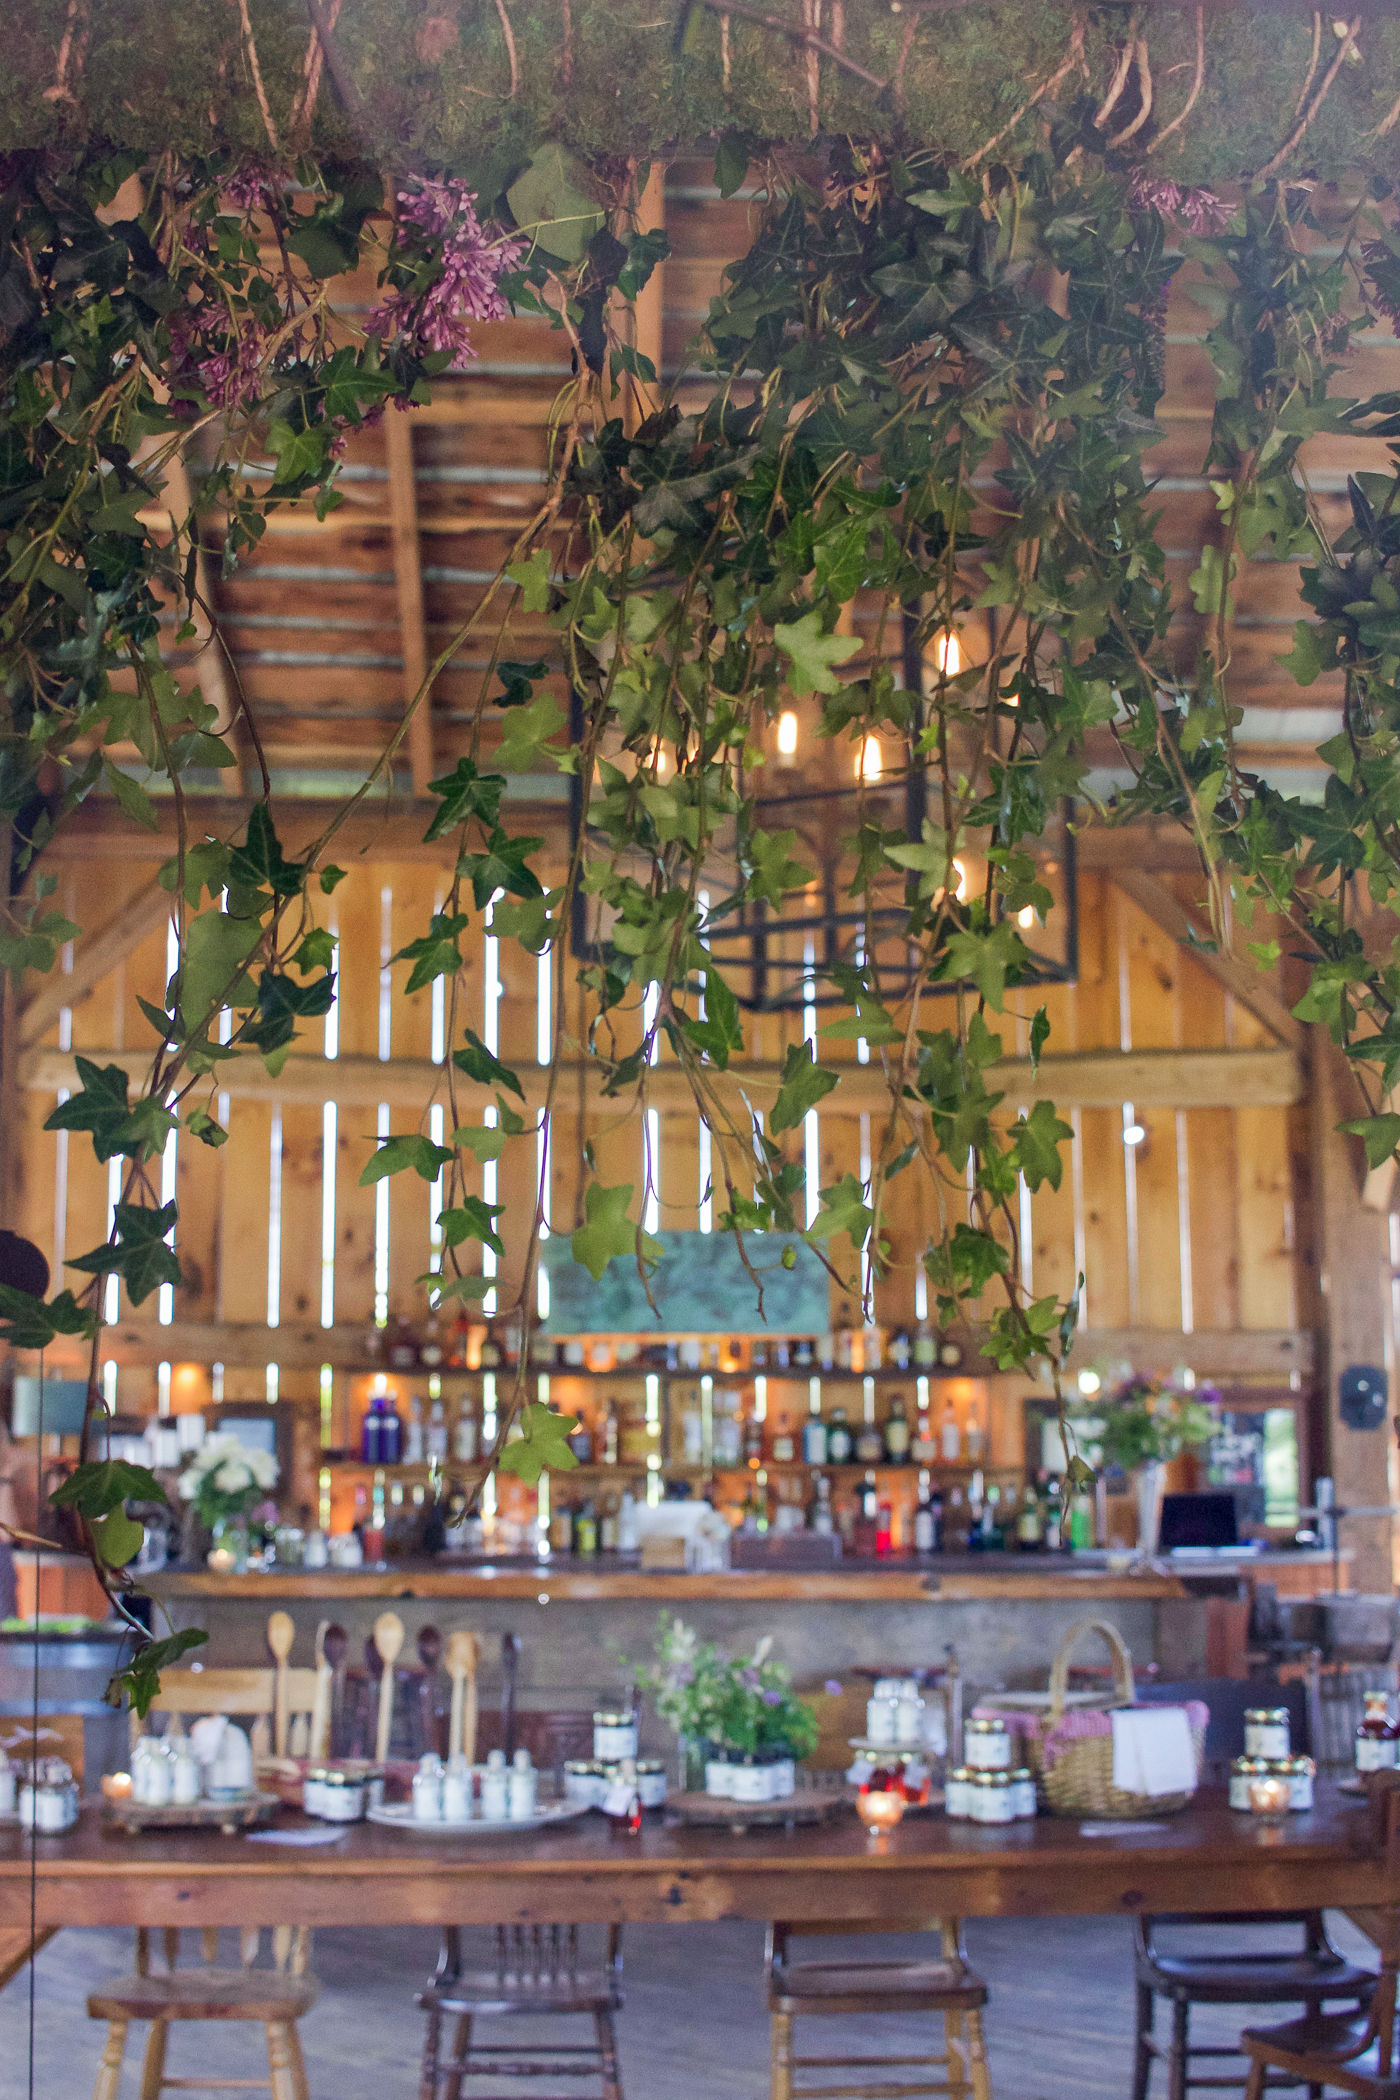 the bar set up at south pond farms - perfect venue for a rustic wedding near toronto